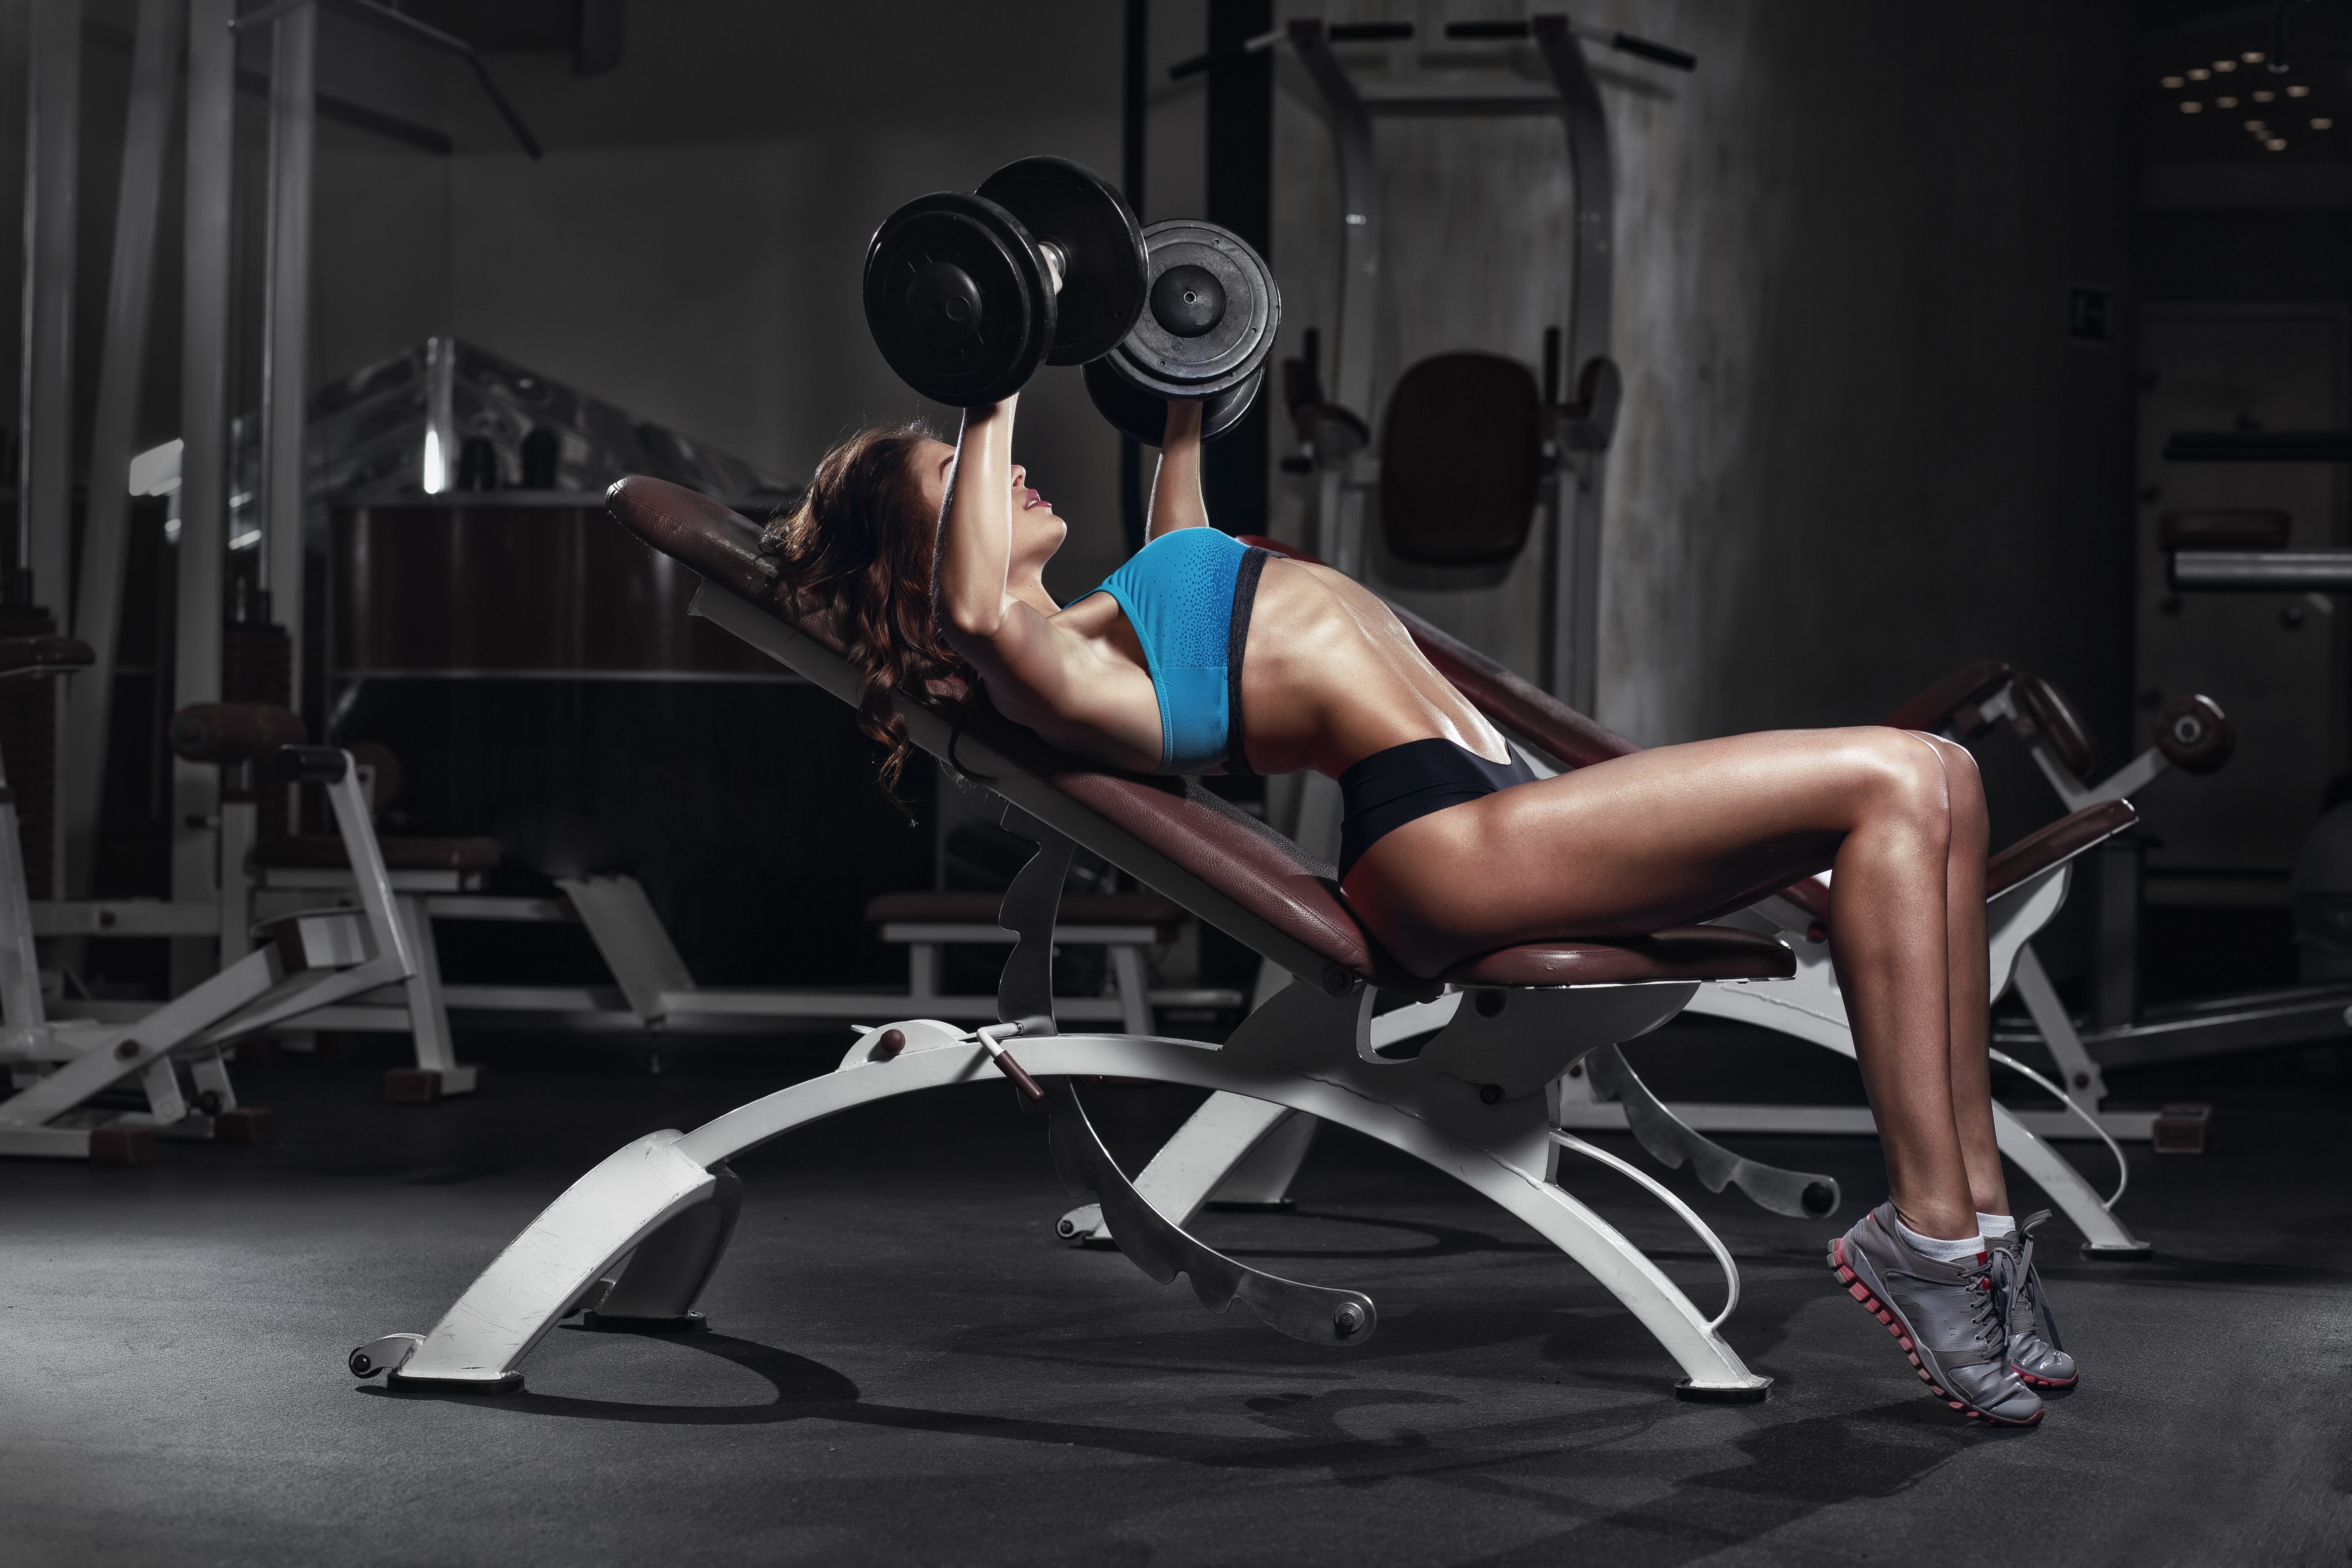 Image: Girl, shell, exercise, bench press, dumbbells, gym, deals